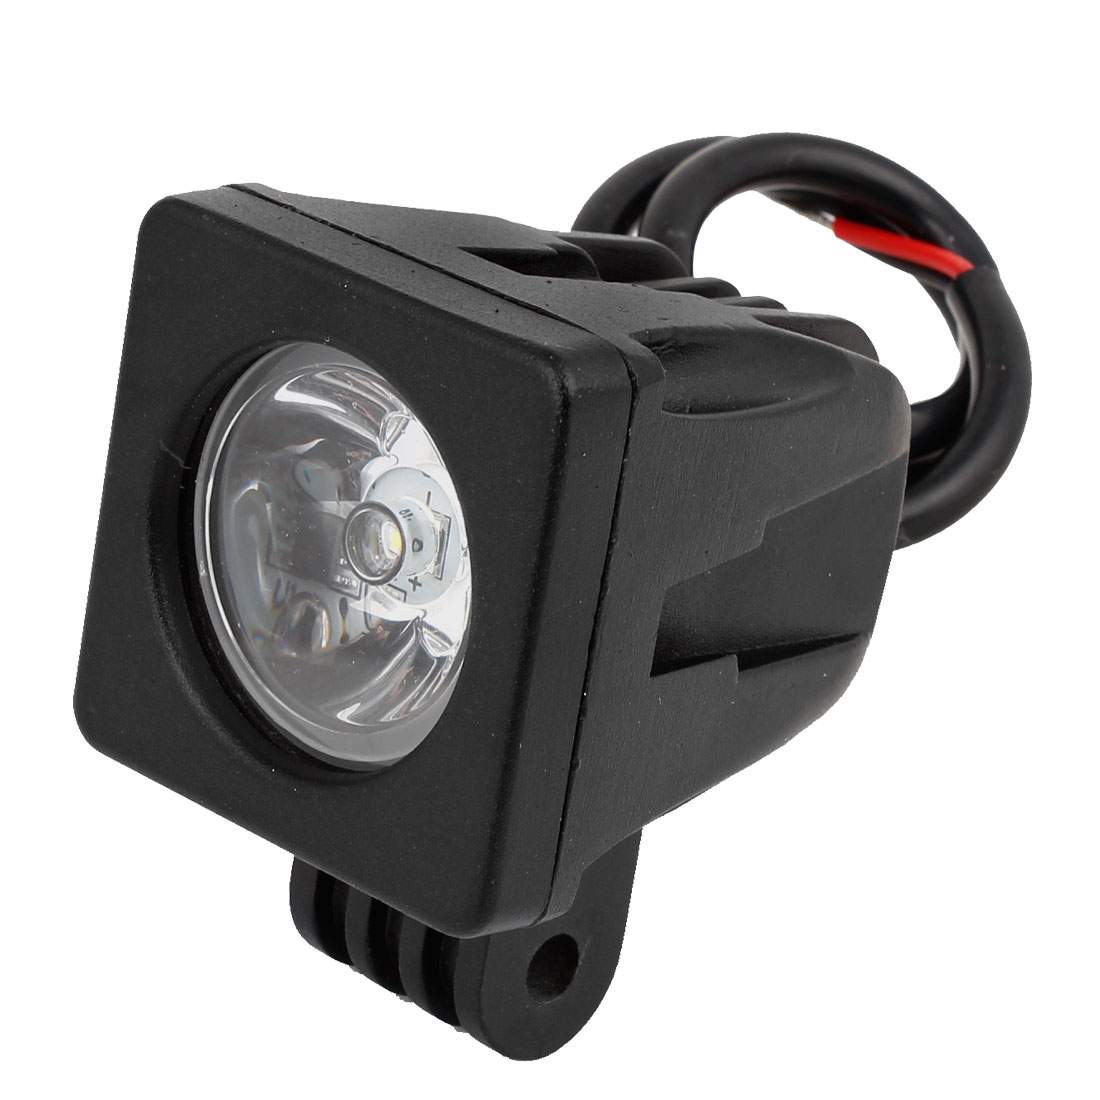 DC 12V 12W Black Metal Square Shaped White LED Work Light Spot Beam Driving Lamp Offroad ATV SUV